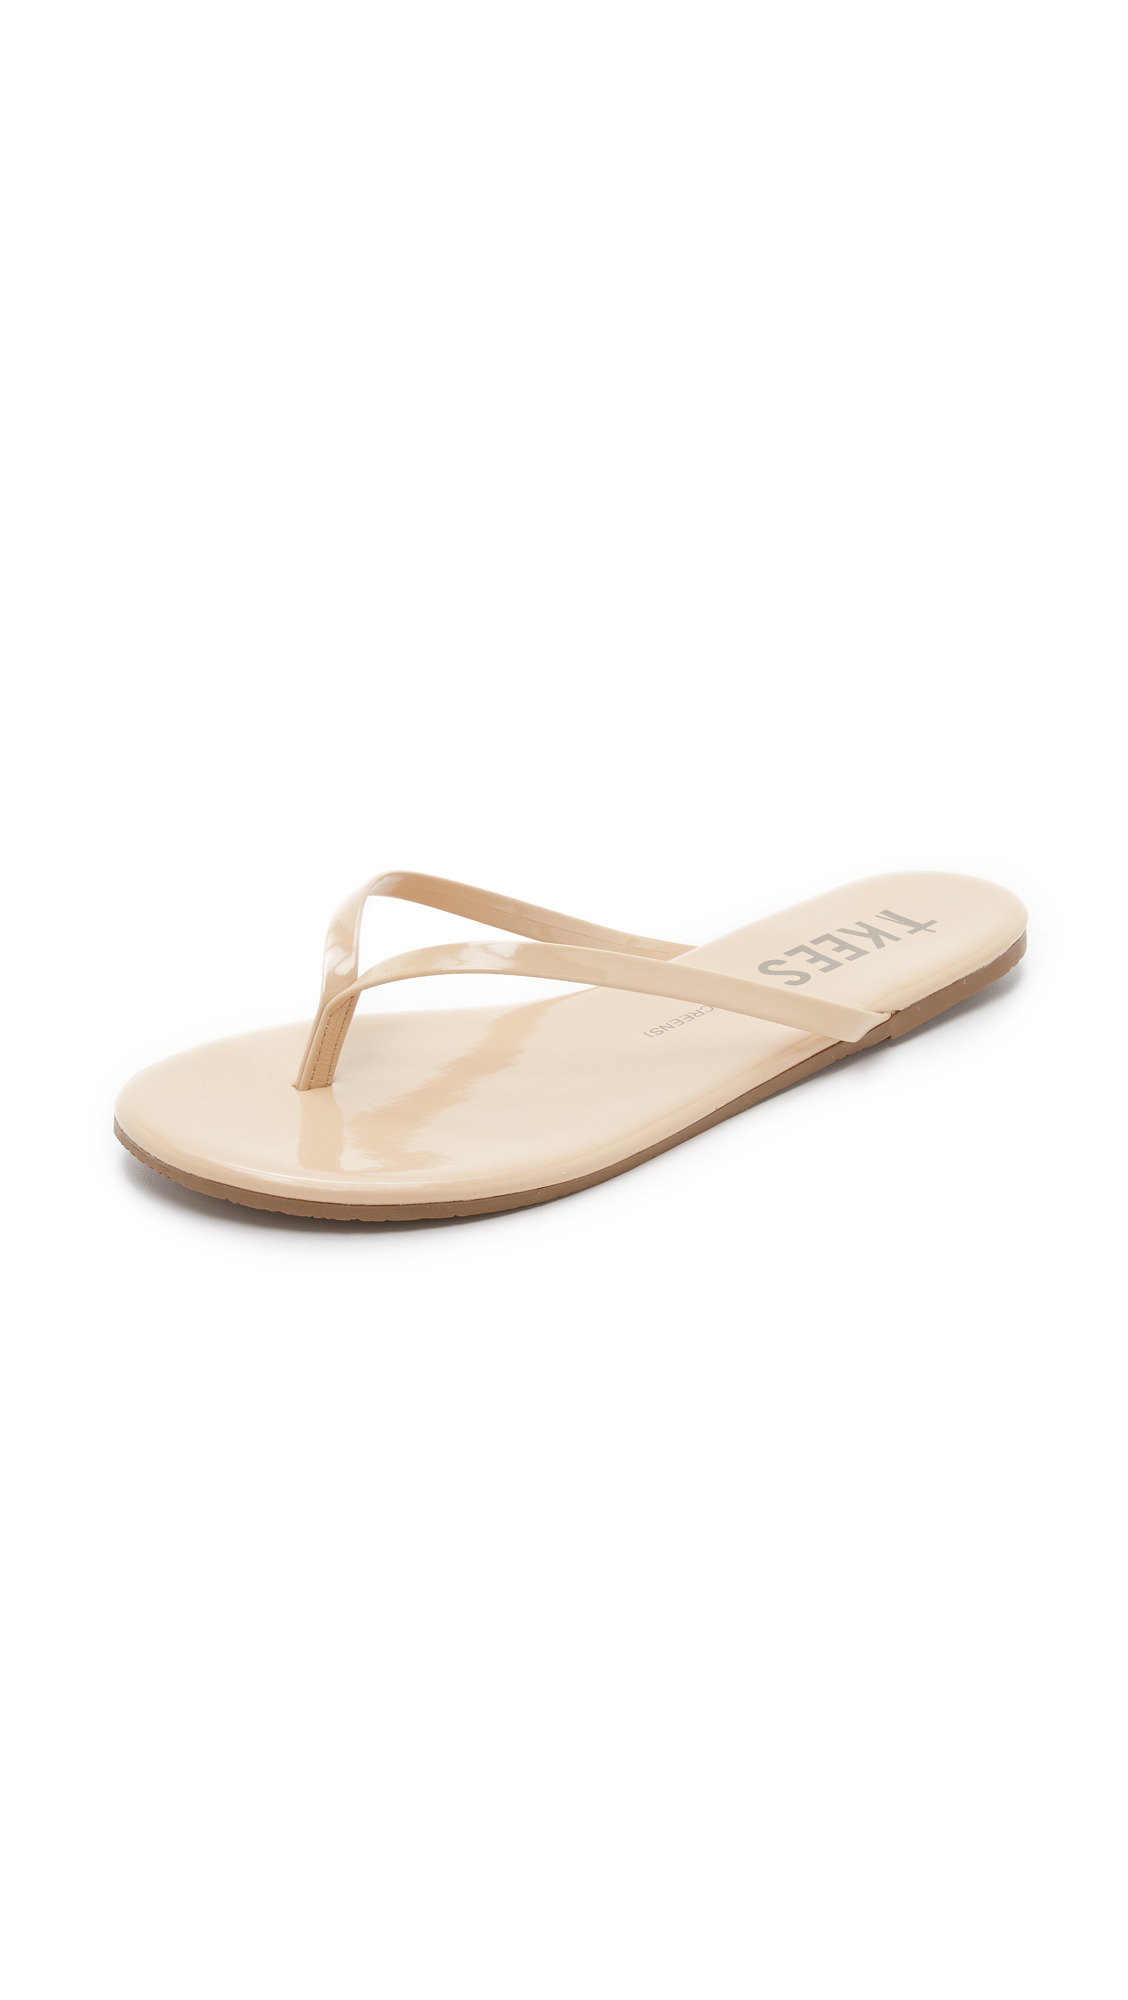 tkees female tkees sunscreens patent flip flops spf 30